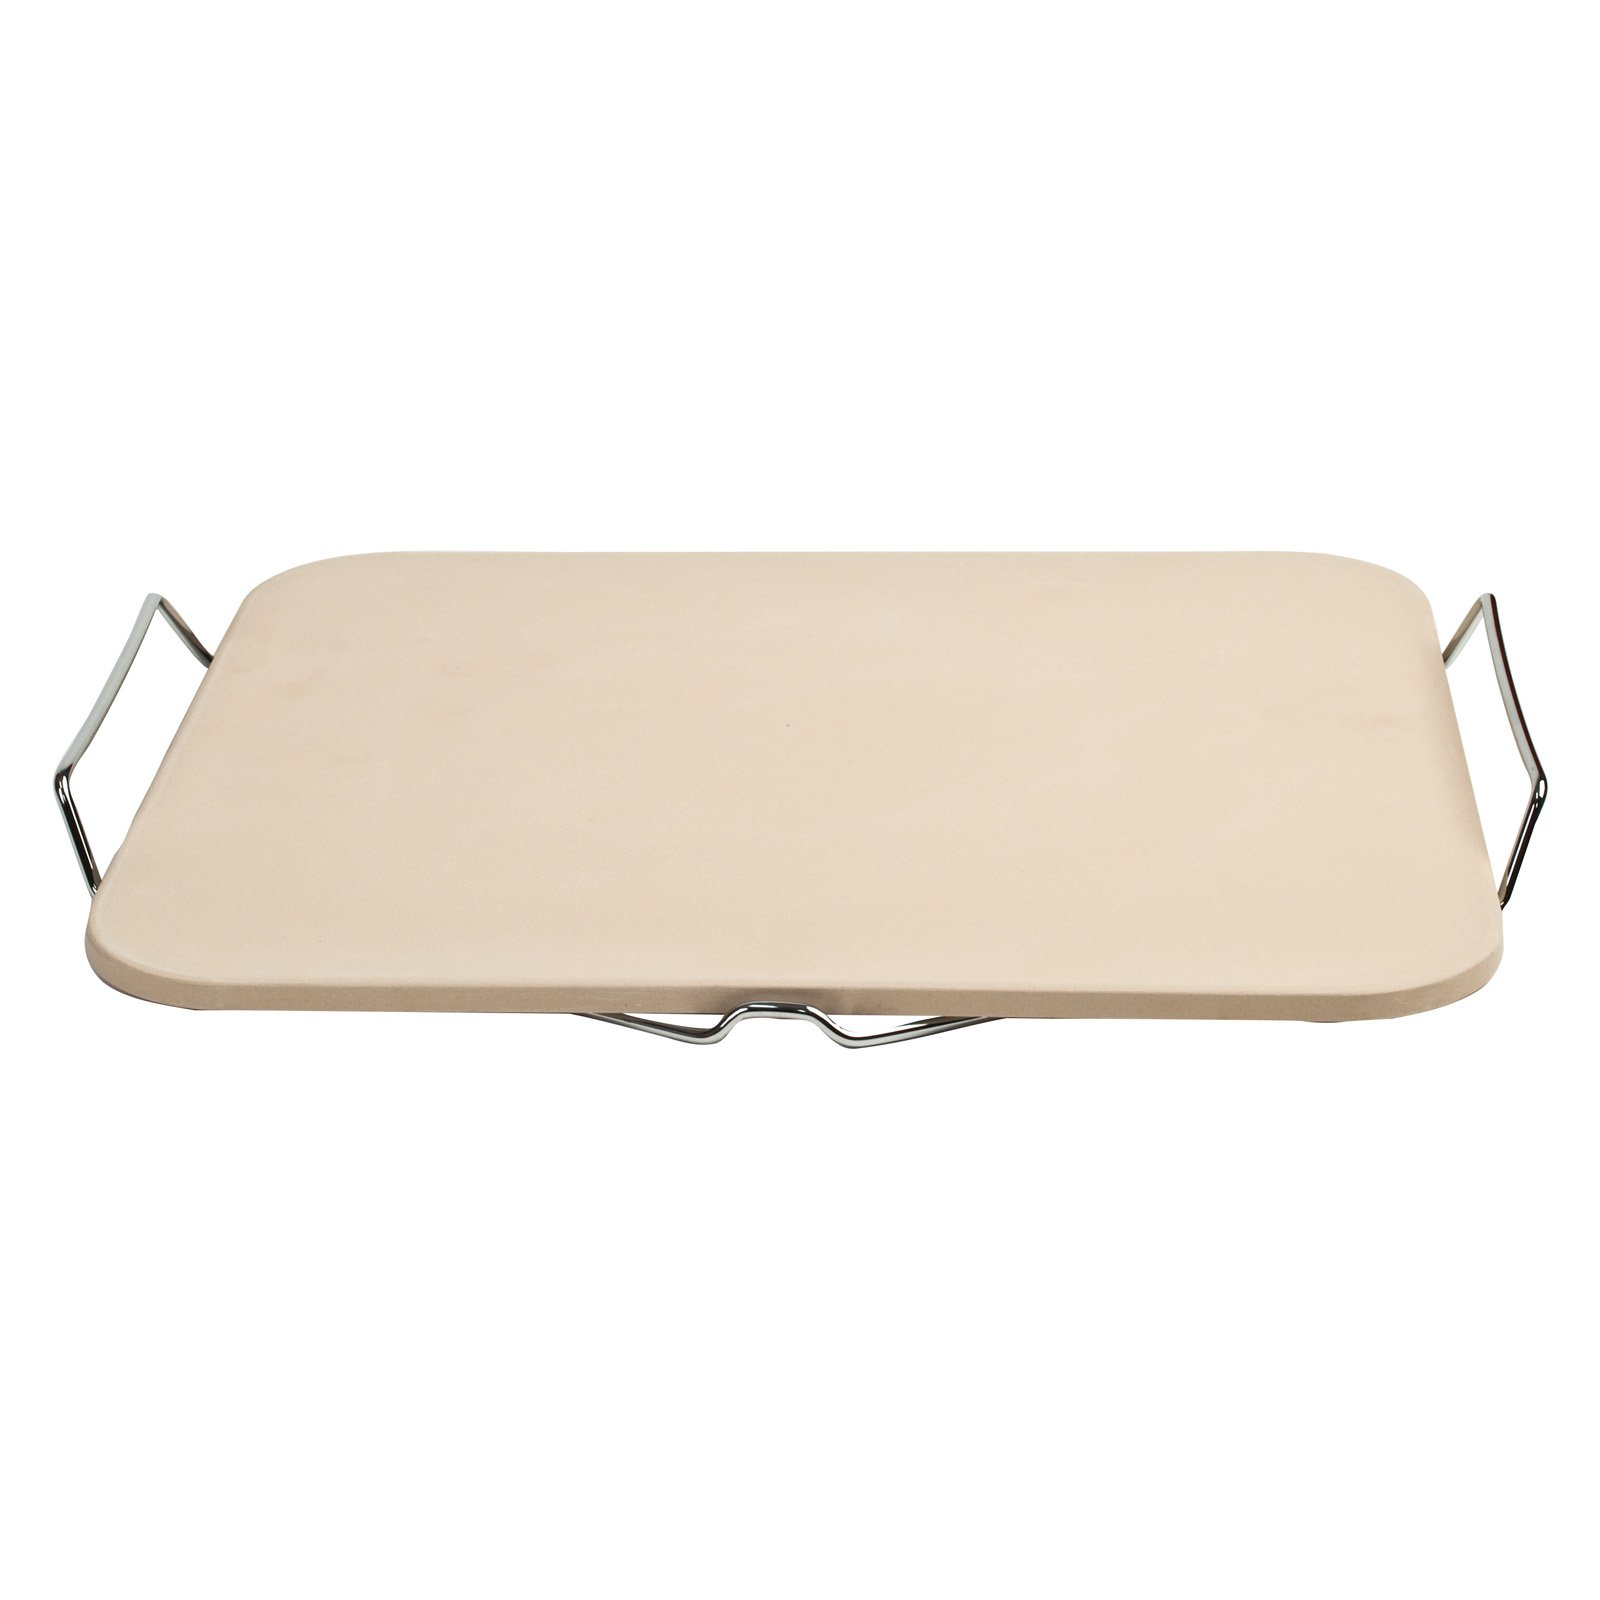 Pizzacraft Rectangle Pizza Stone and Baking Stone with Wire Frame for Oven, Grill or BBQ,... by The Companion Group